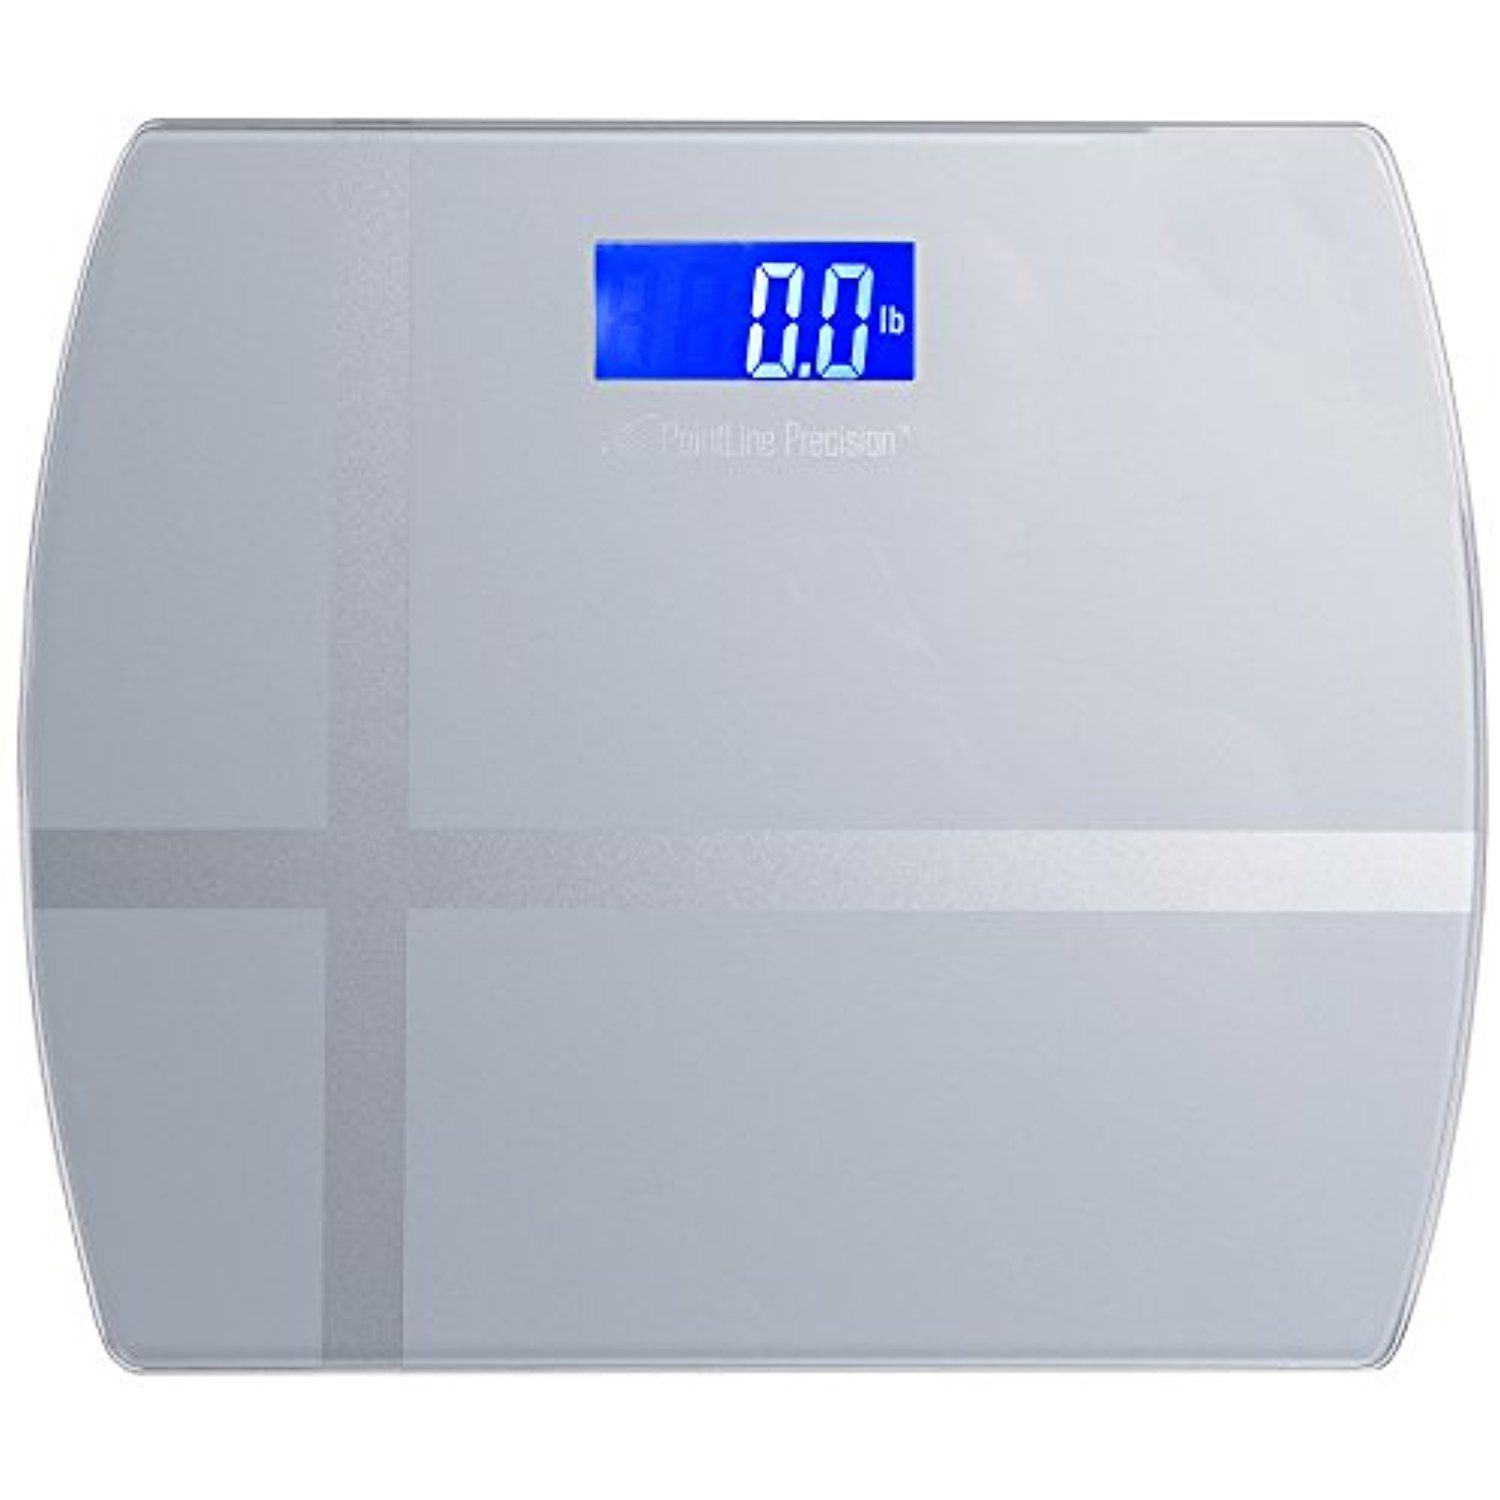 AccuPoint Precision Digital Step-On Body Weight Bathroom